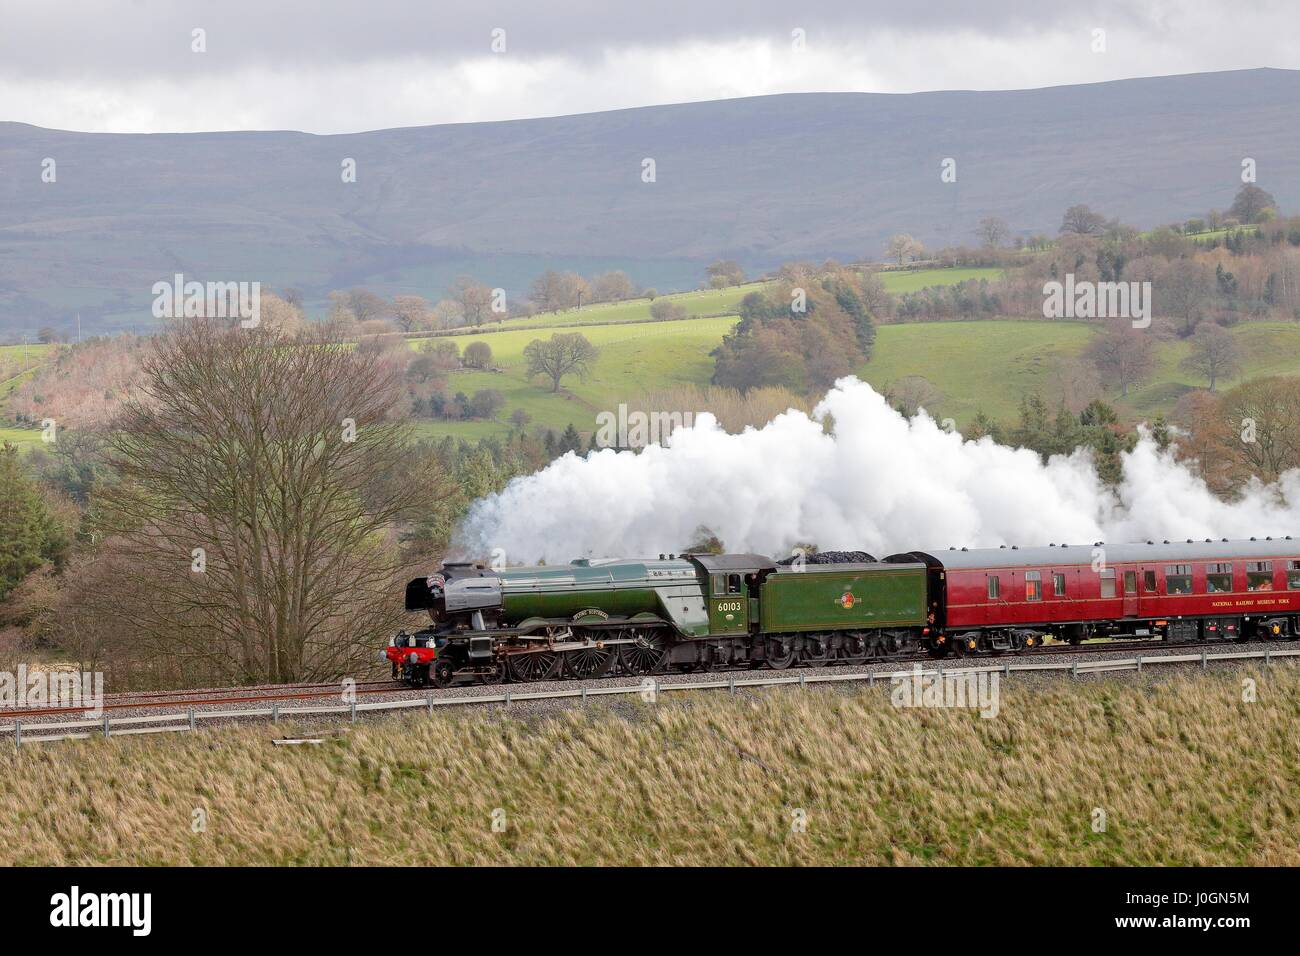 Steam train LNER A3 Class 4-6-2 no 60103 Flying Scotsman. Lazonby, Eden Valley, Cumbria, Settle to Carlisle Railway - Stock Image